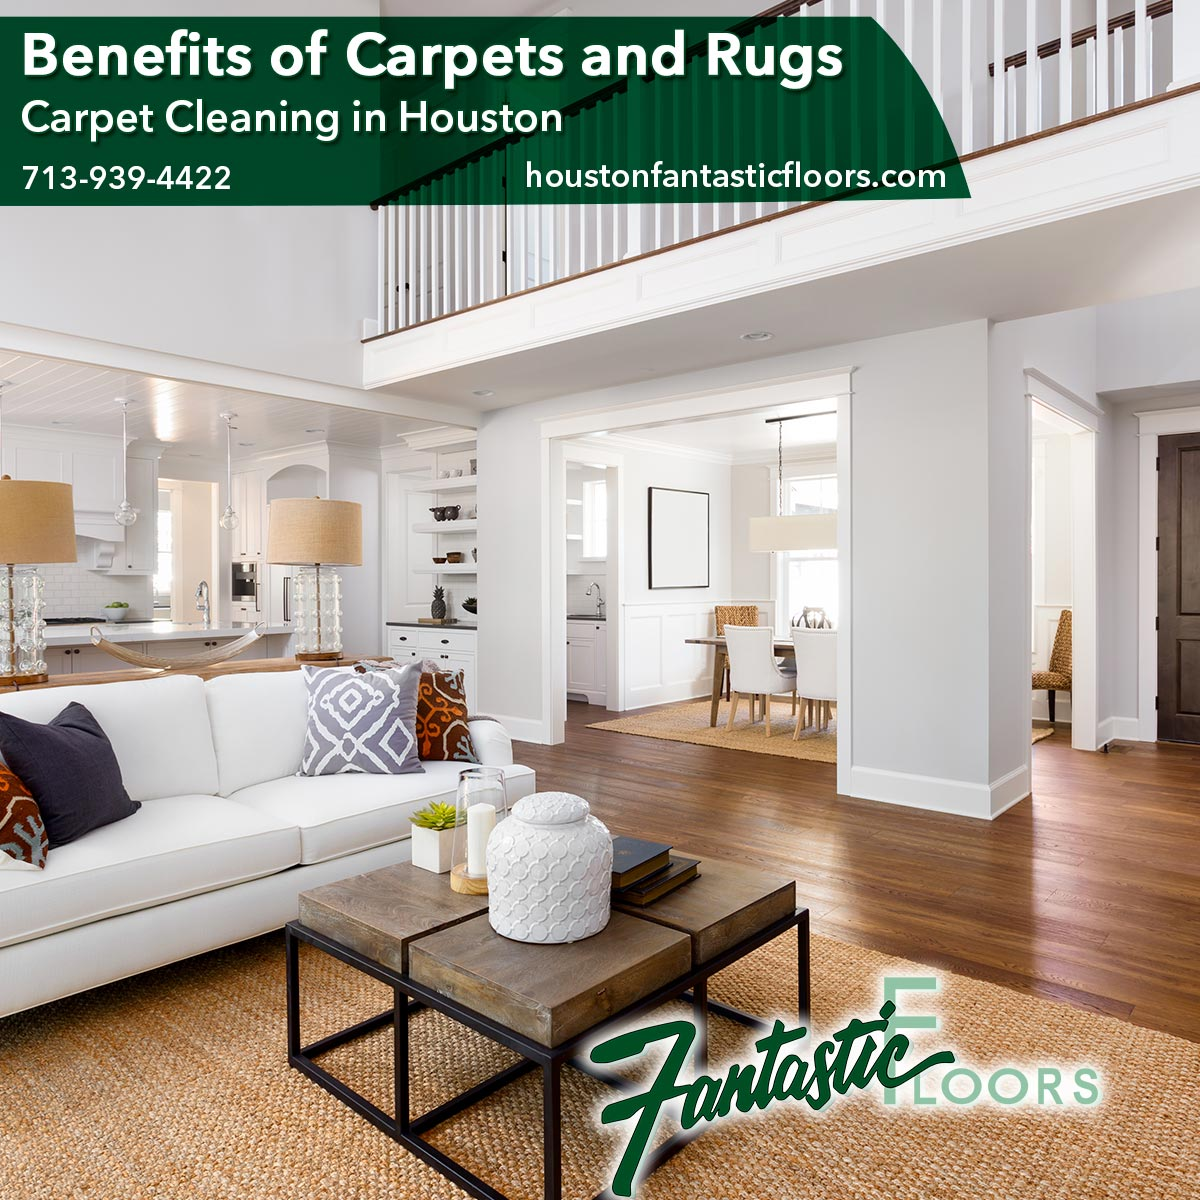 sofa cleaning services houston rose gold sofas uk fantastic floors inc benefits of carpets and rugs